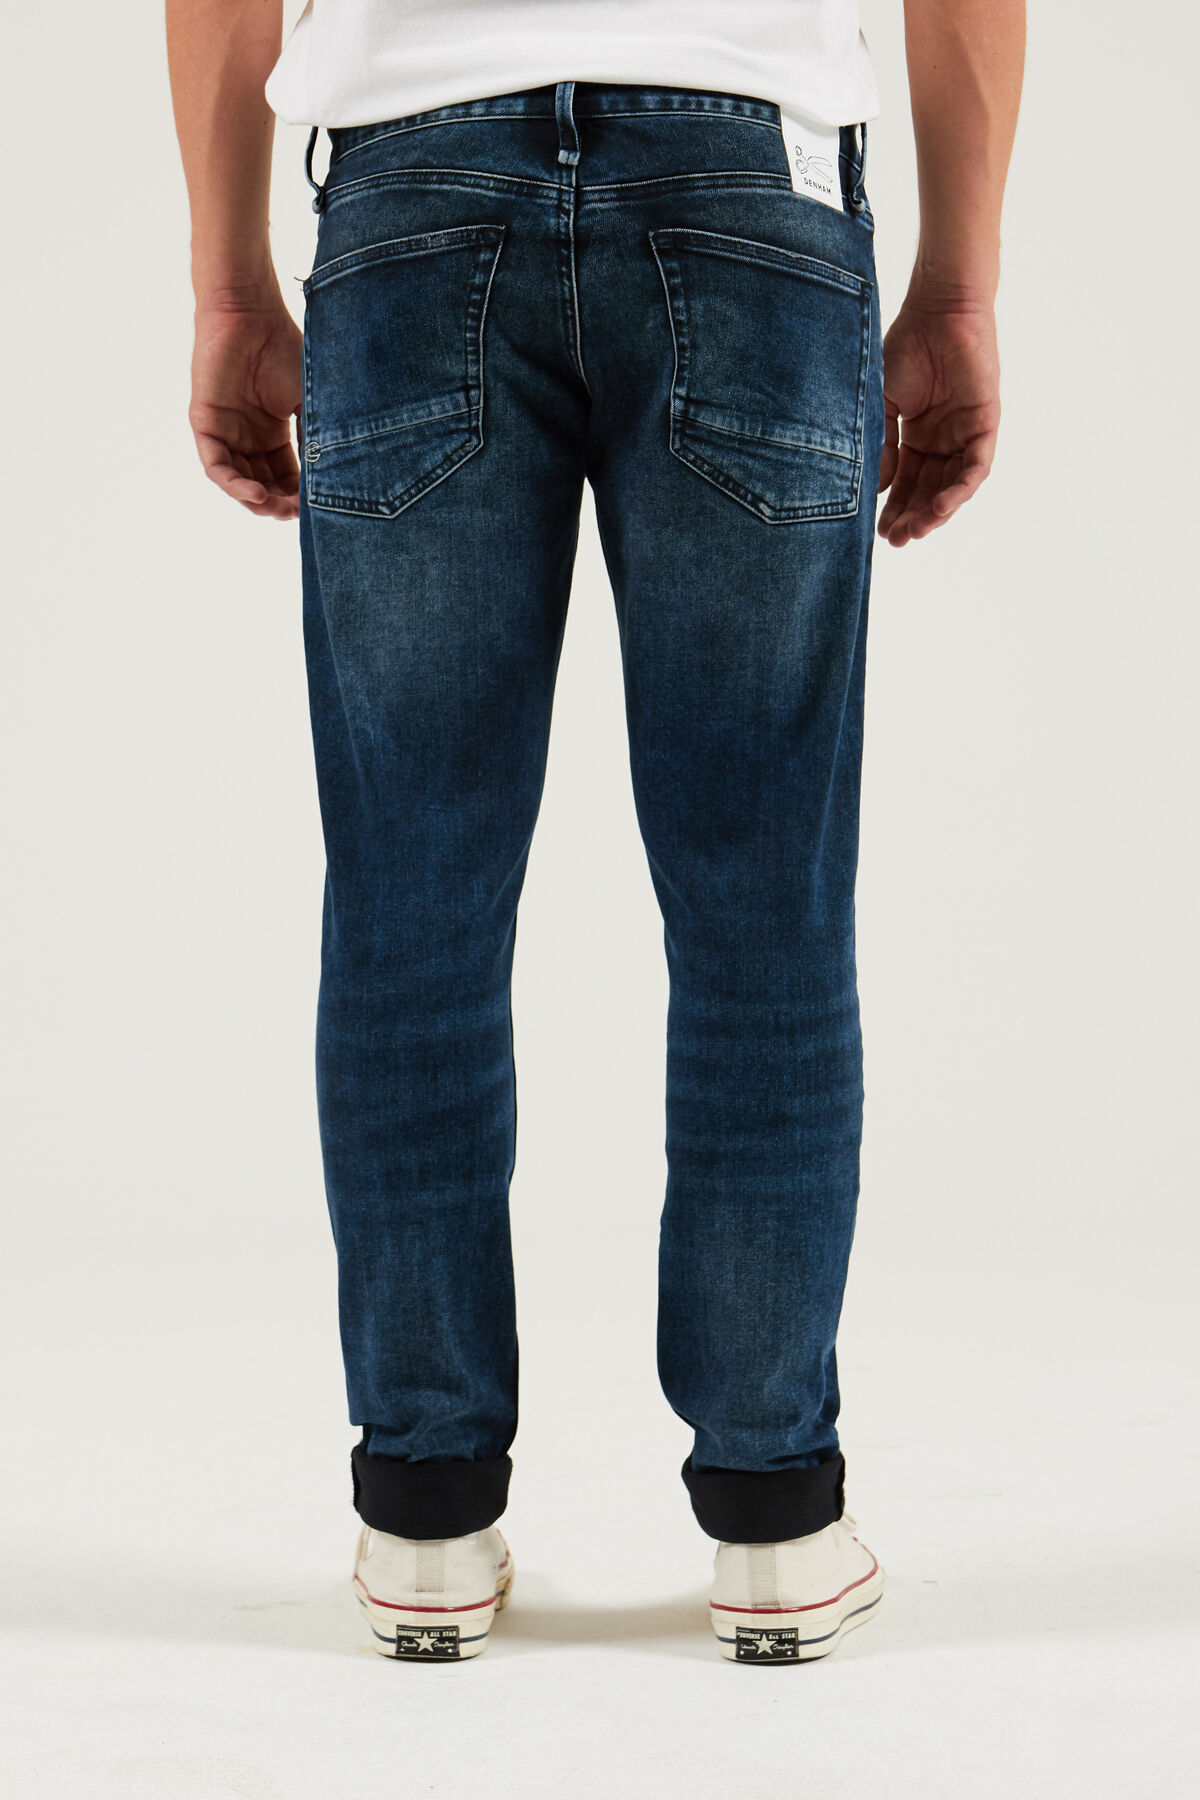 YORK Blue-black, black fade - Slim, Tapered Fit